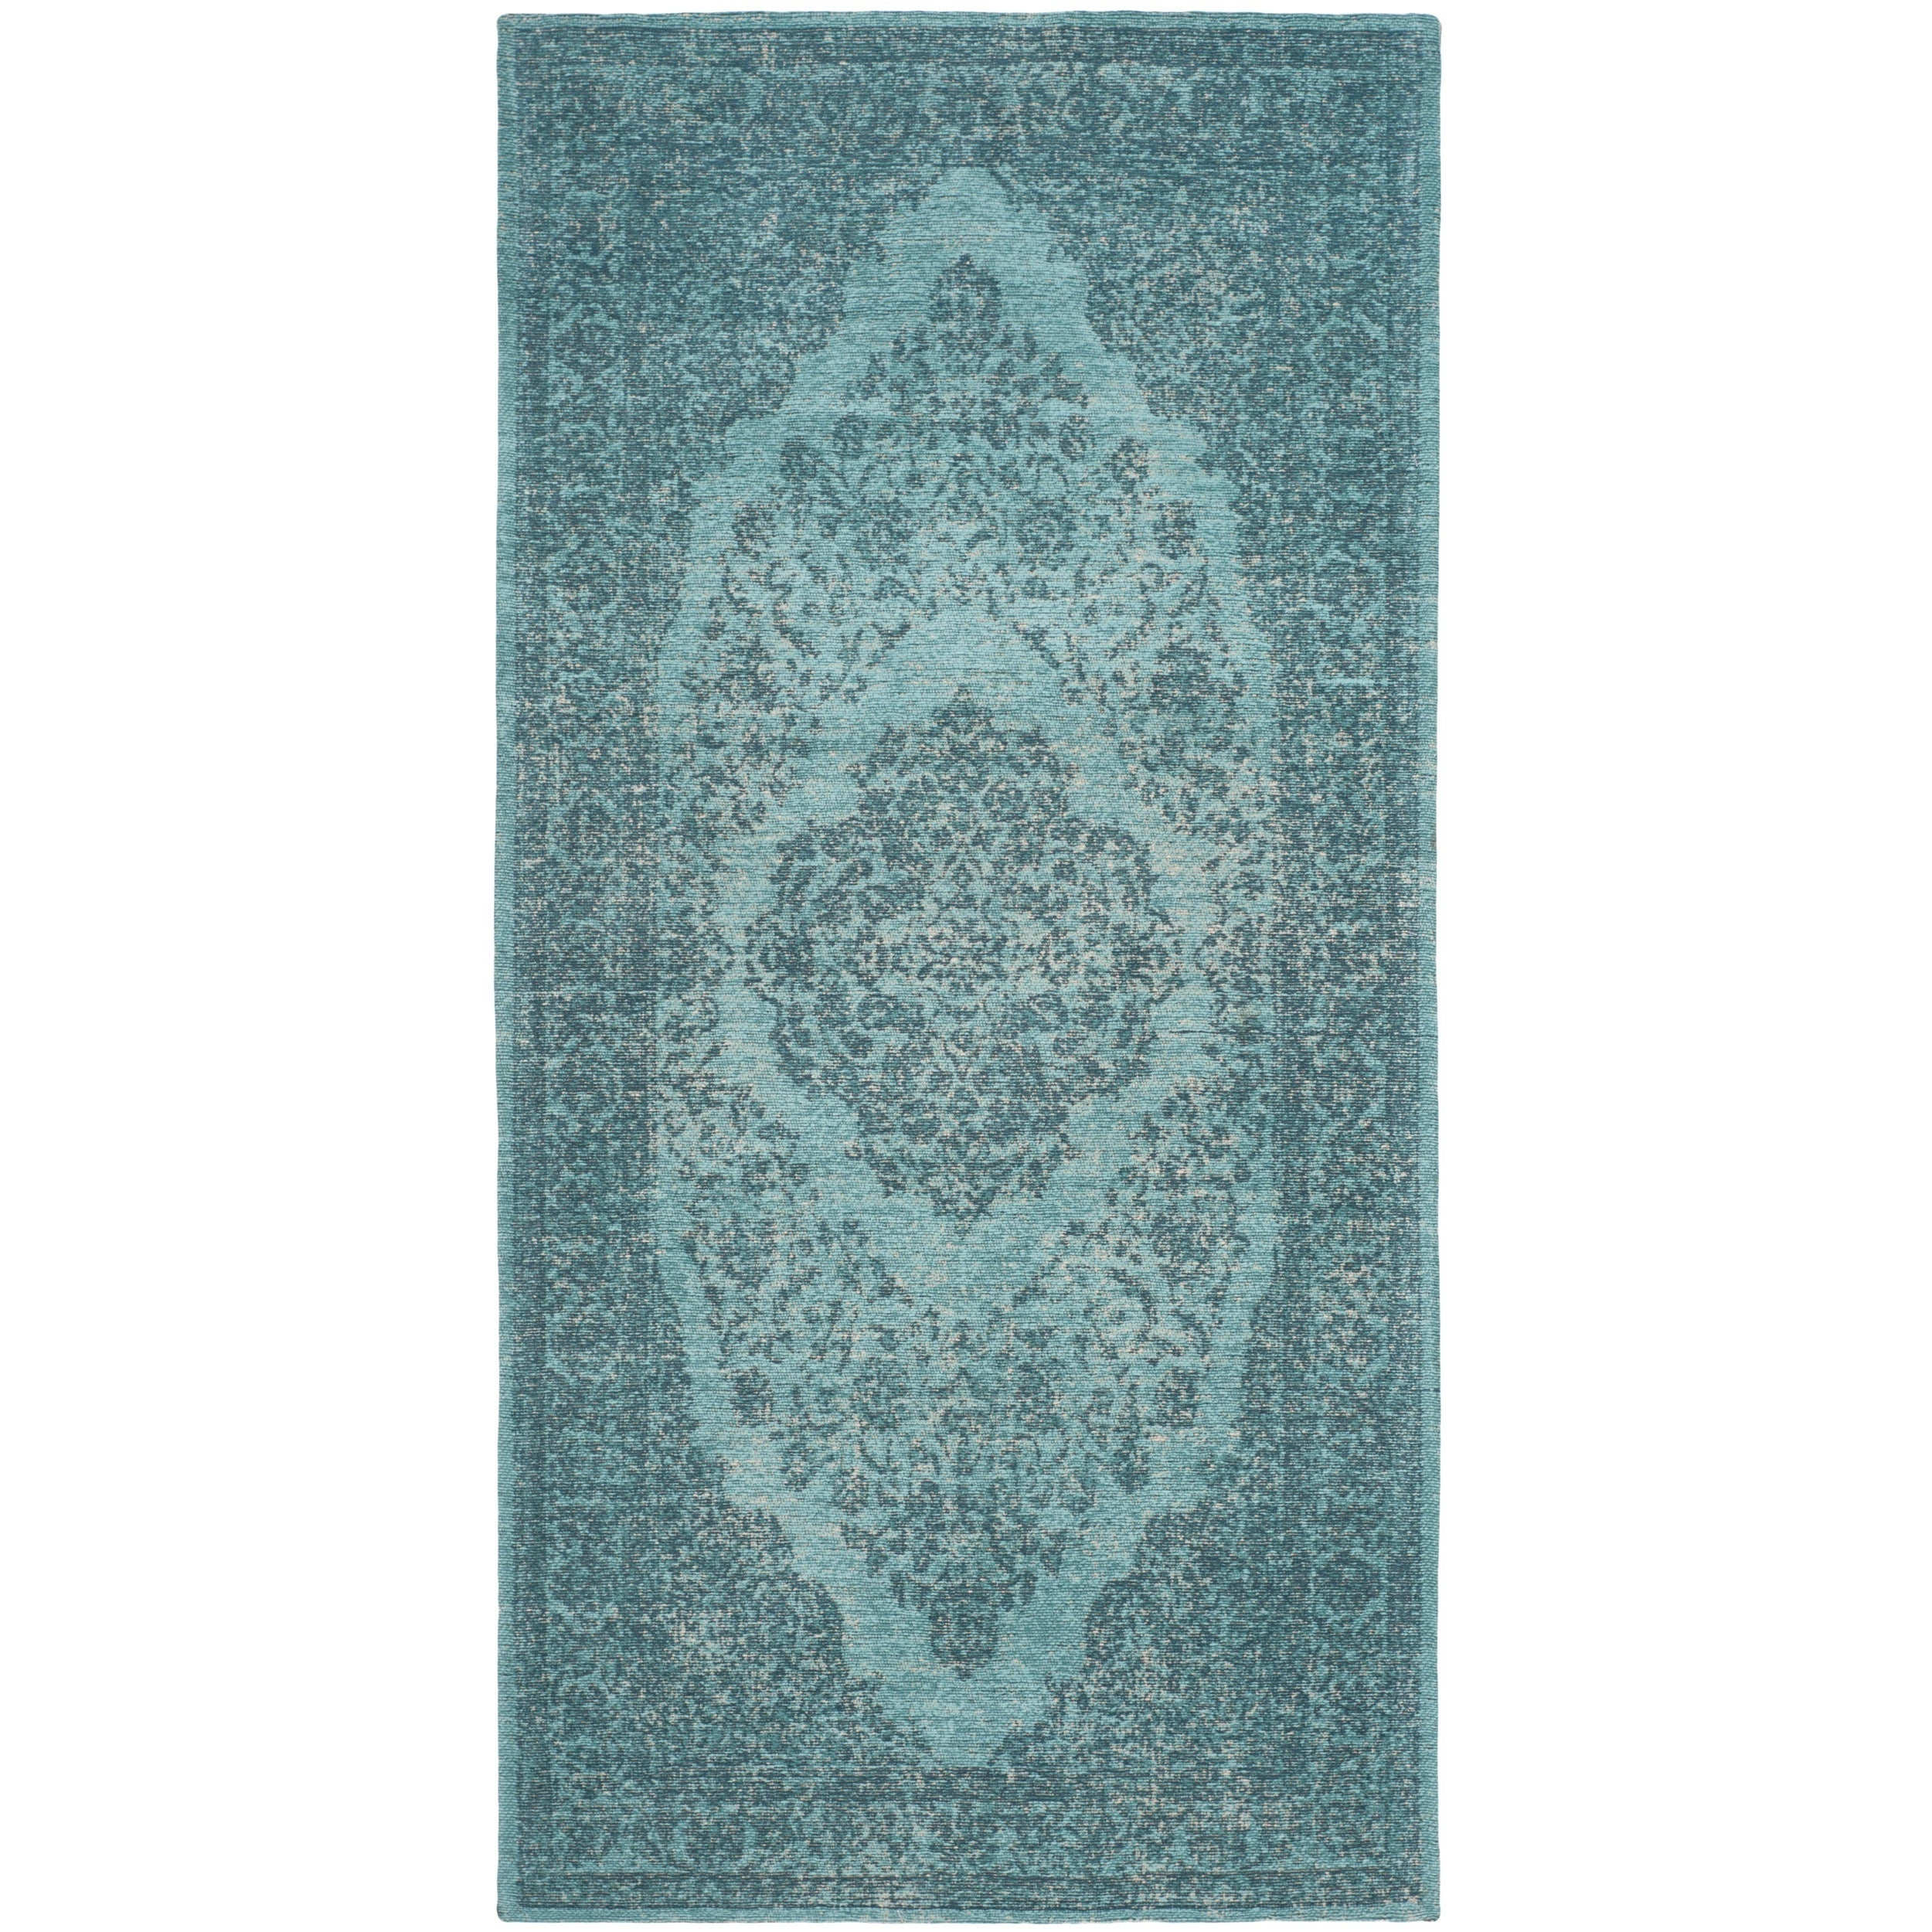 Safavieh Classic Vintage Overdyed Aqua Cotton Distressed ...